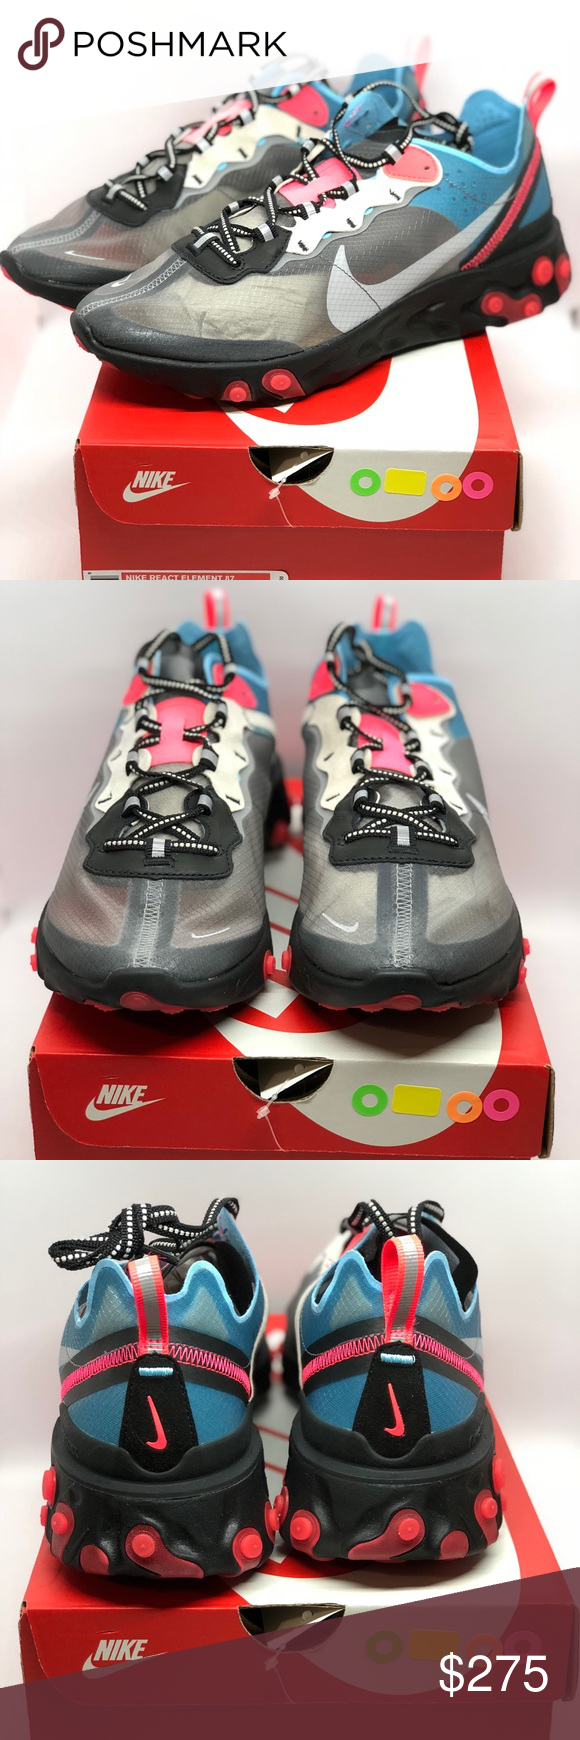 e1062f9439e7 Nike React Element 87 men s size 9.5us NEW w box Brand new in the